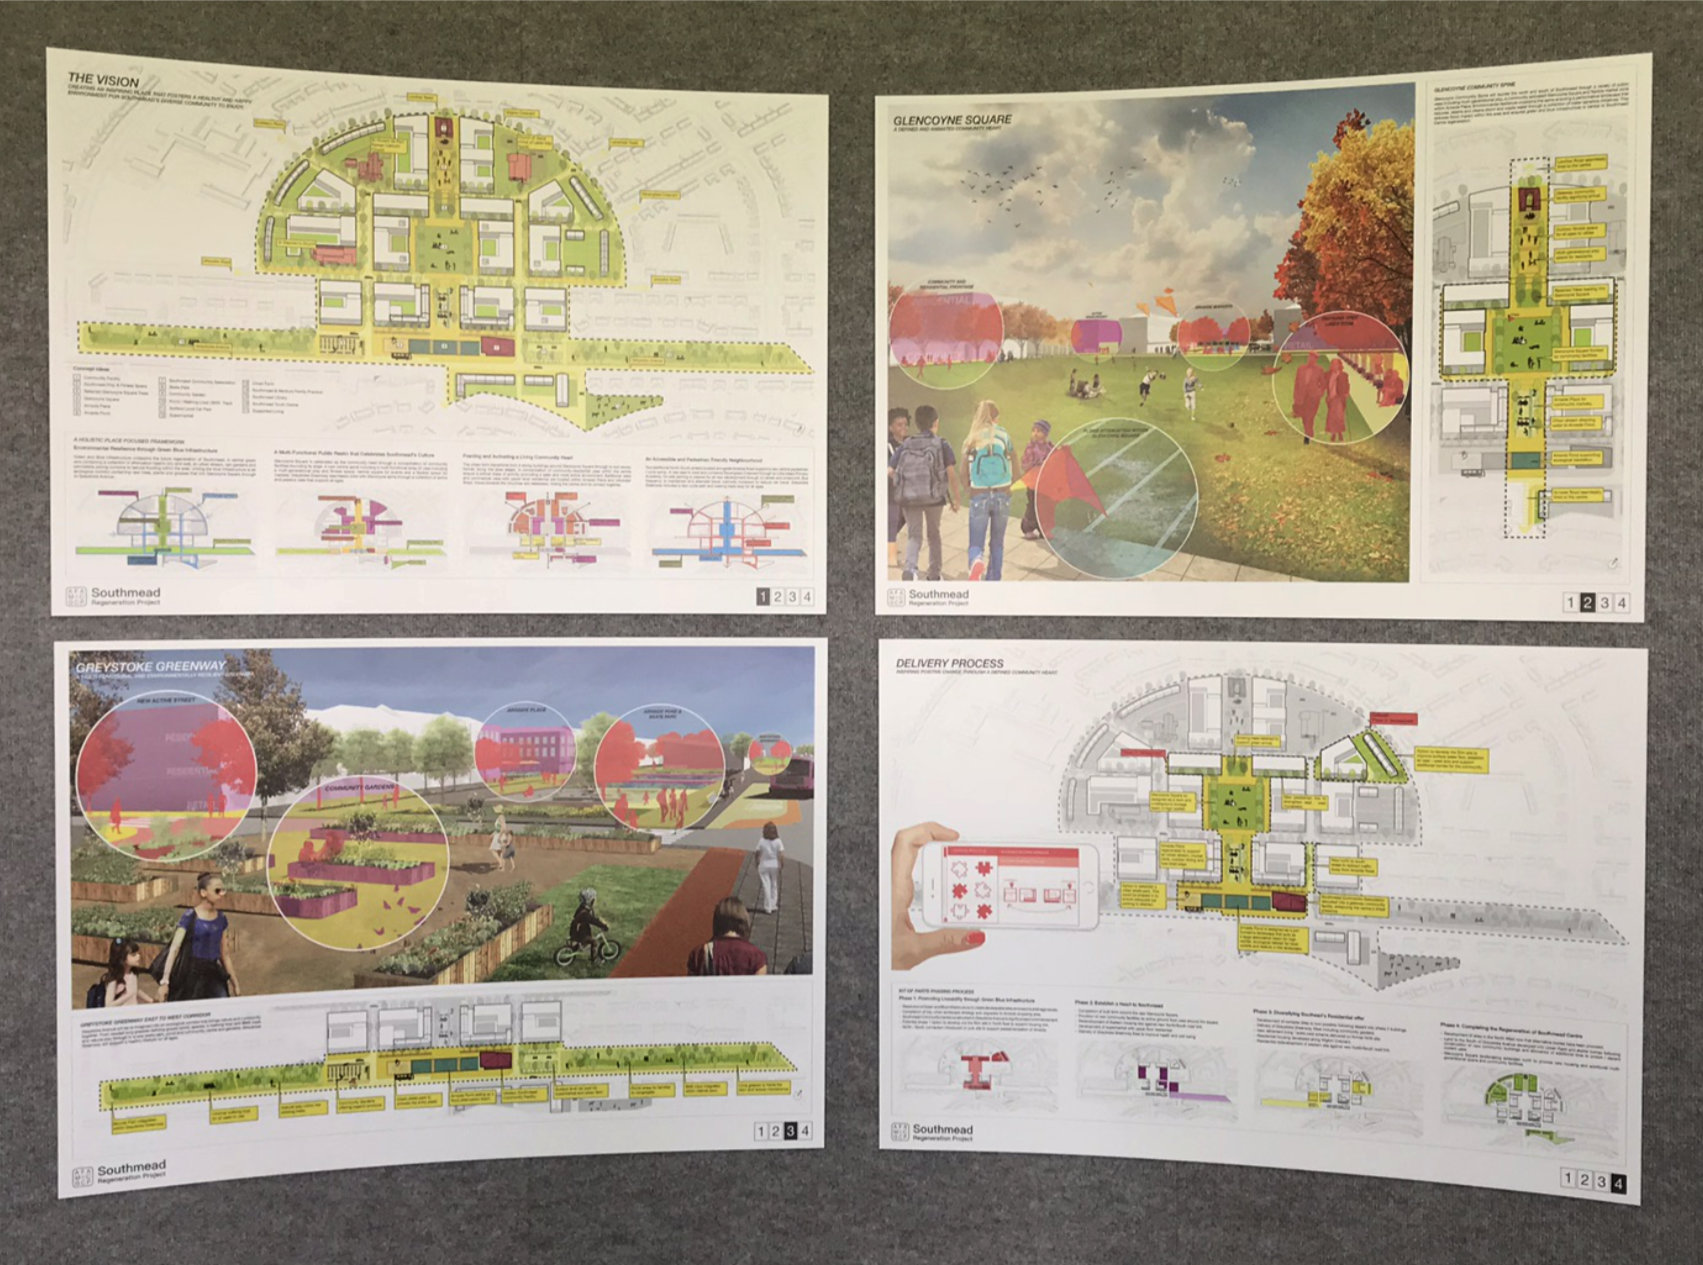 Competition Display Boards for Glencoyne Square Redevelopment